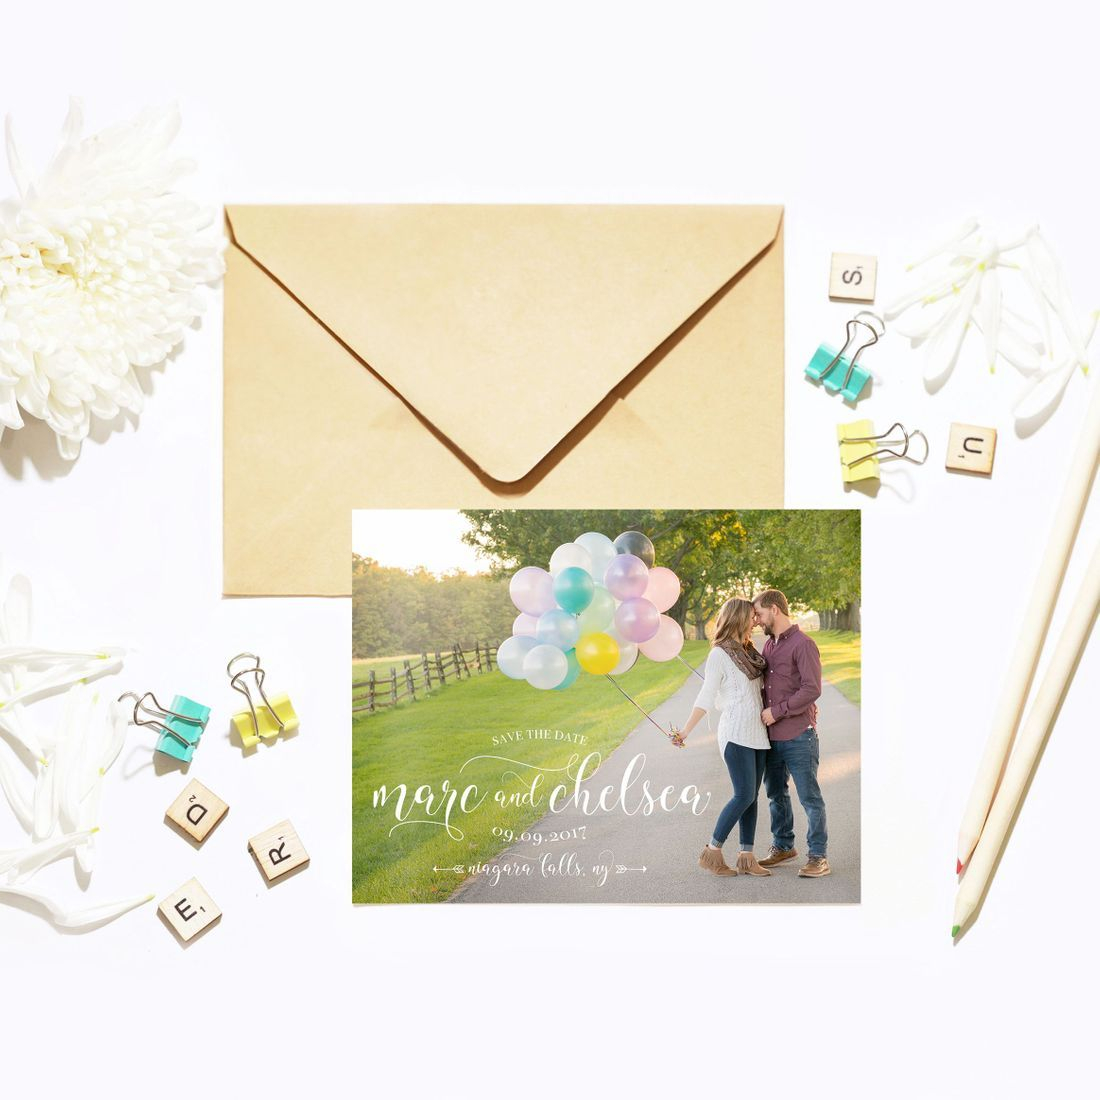 Save the date flat lay of engaged couple with balloons on country lane